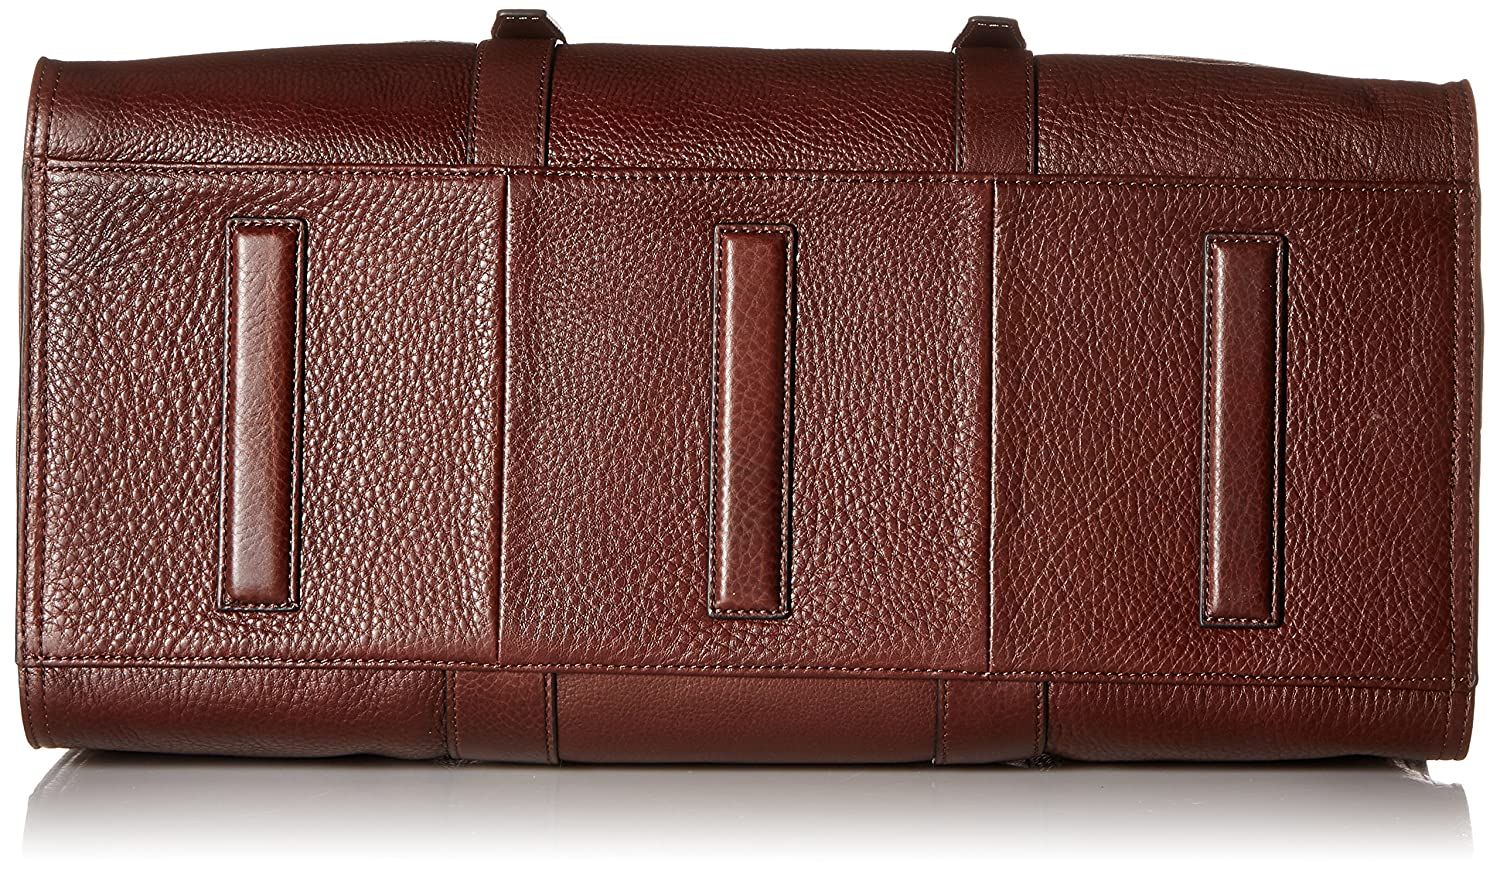 Ted Baker Victory Pebble Grain Leather Holdall - O S 2fdfacb2a2724